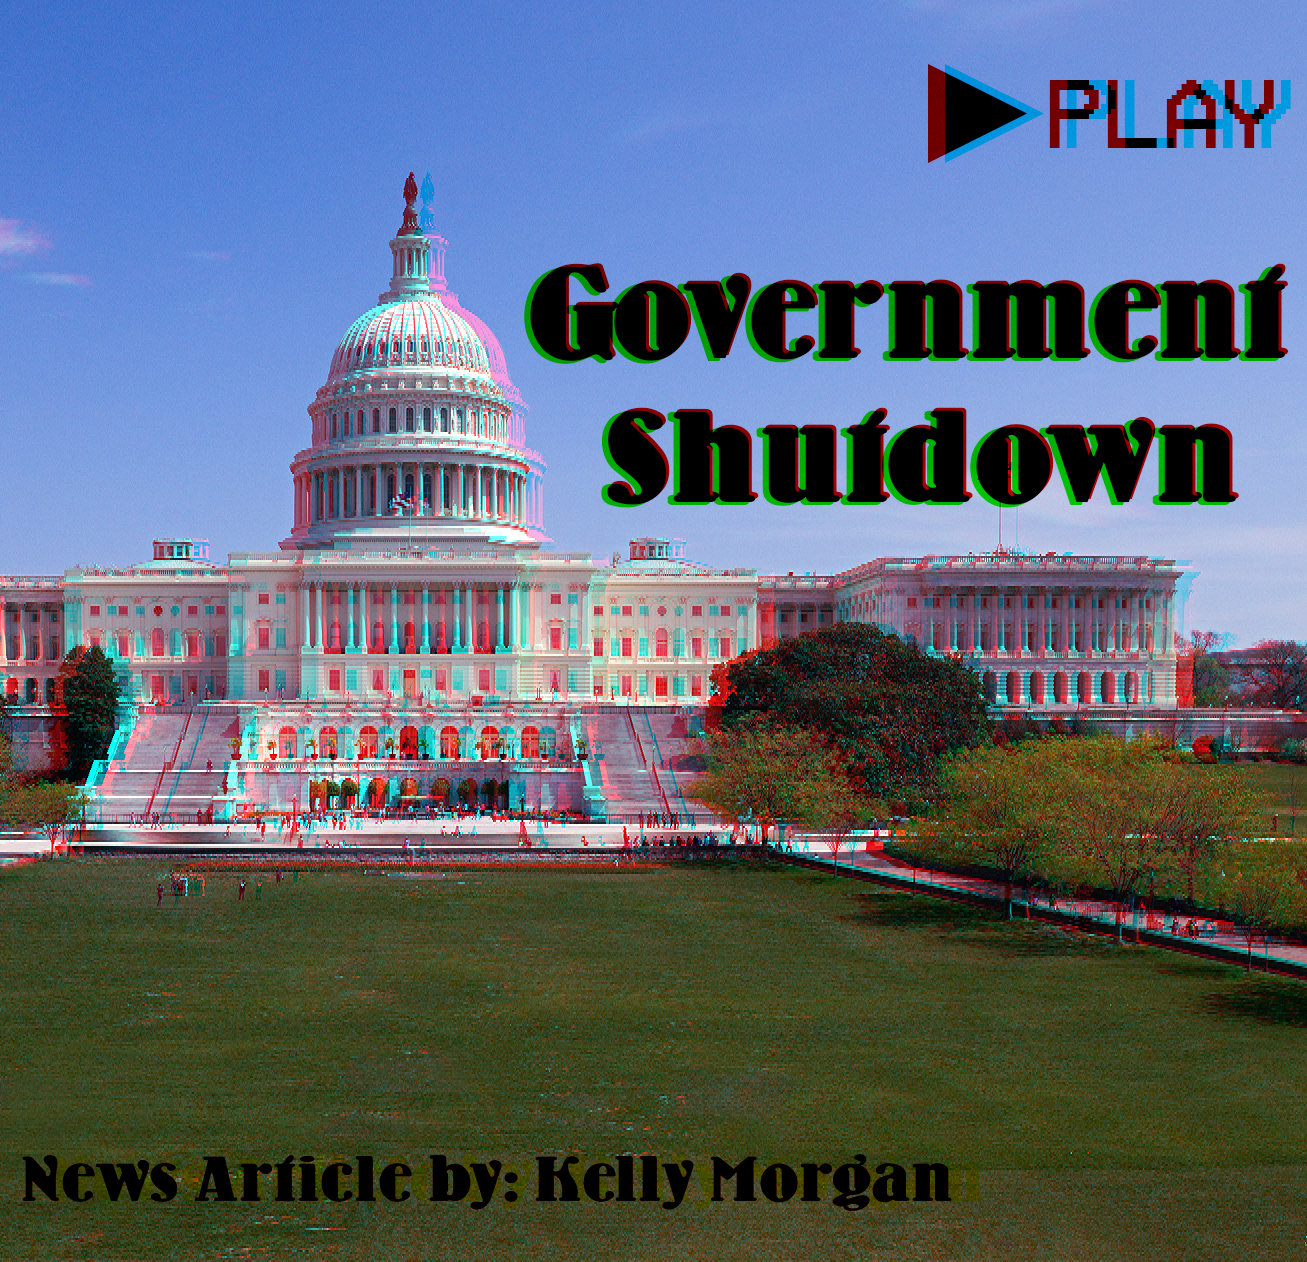 The government shut down lasted 34 days before reopening.